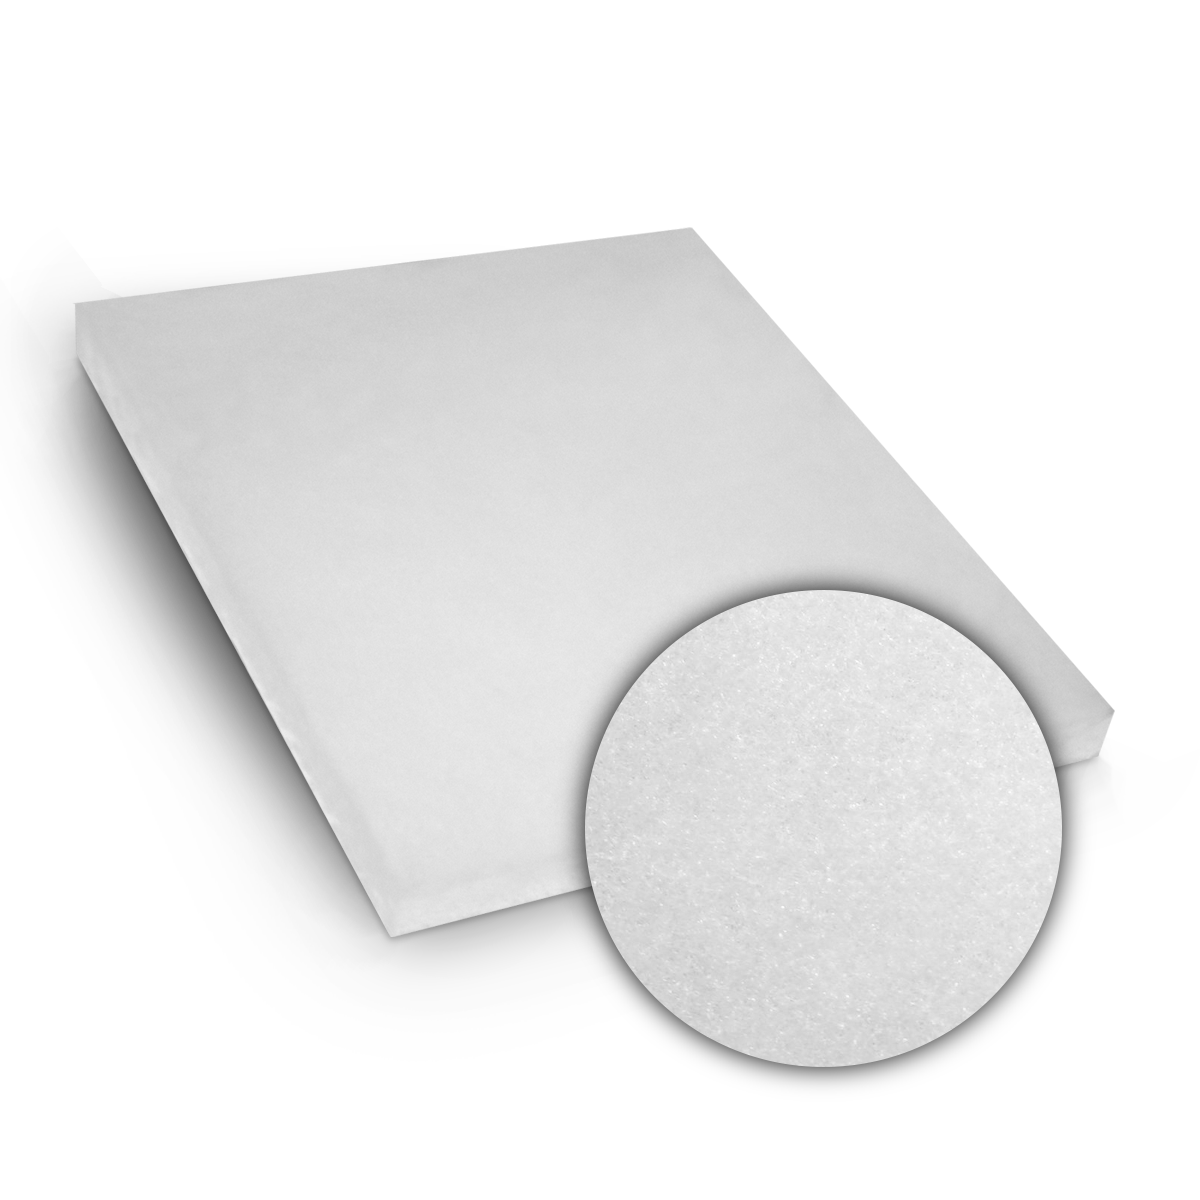 24x24x1 Sure-Fit LEVEL 10 MERV 10 Anti-Microbial Pad